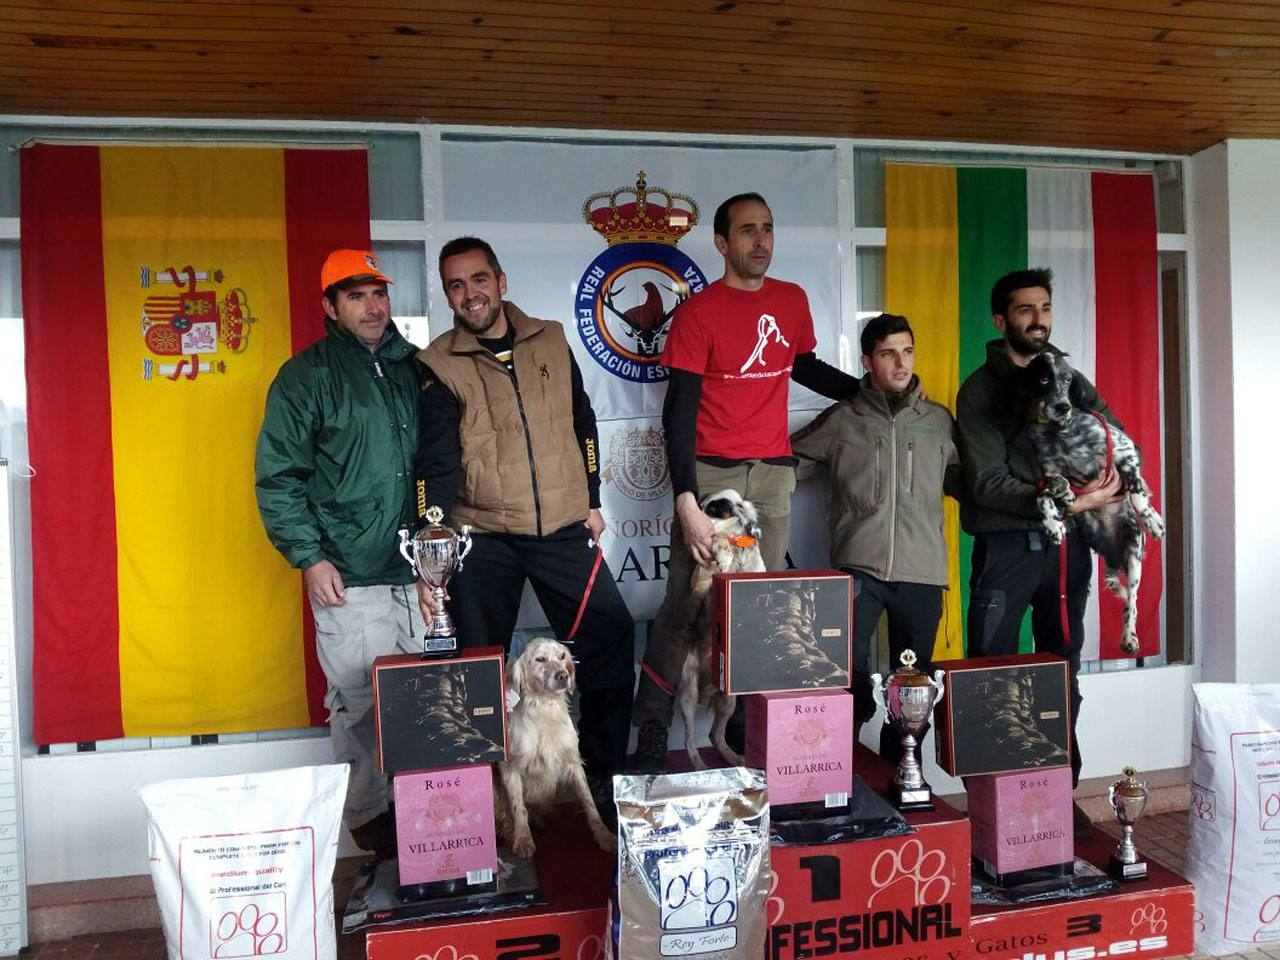 Campeon España 2014 - Podium  Miguel Angel